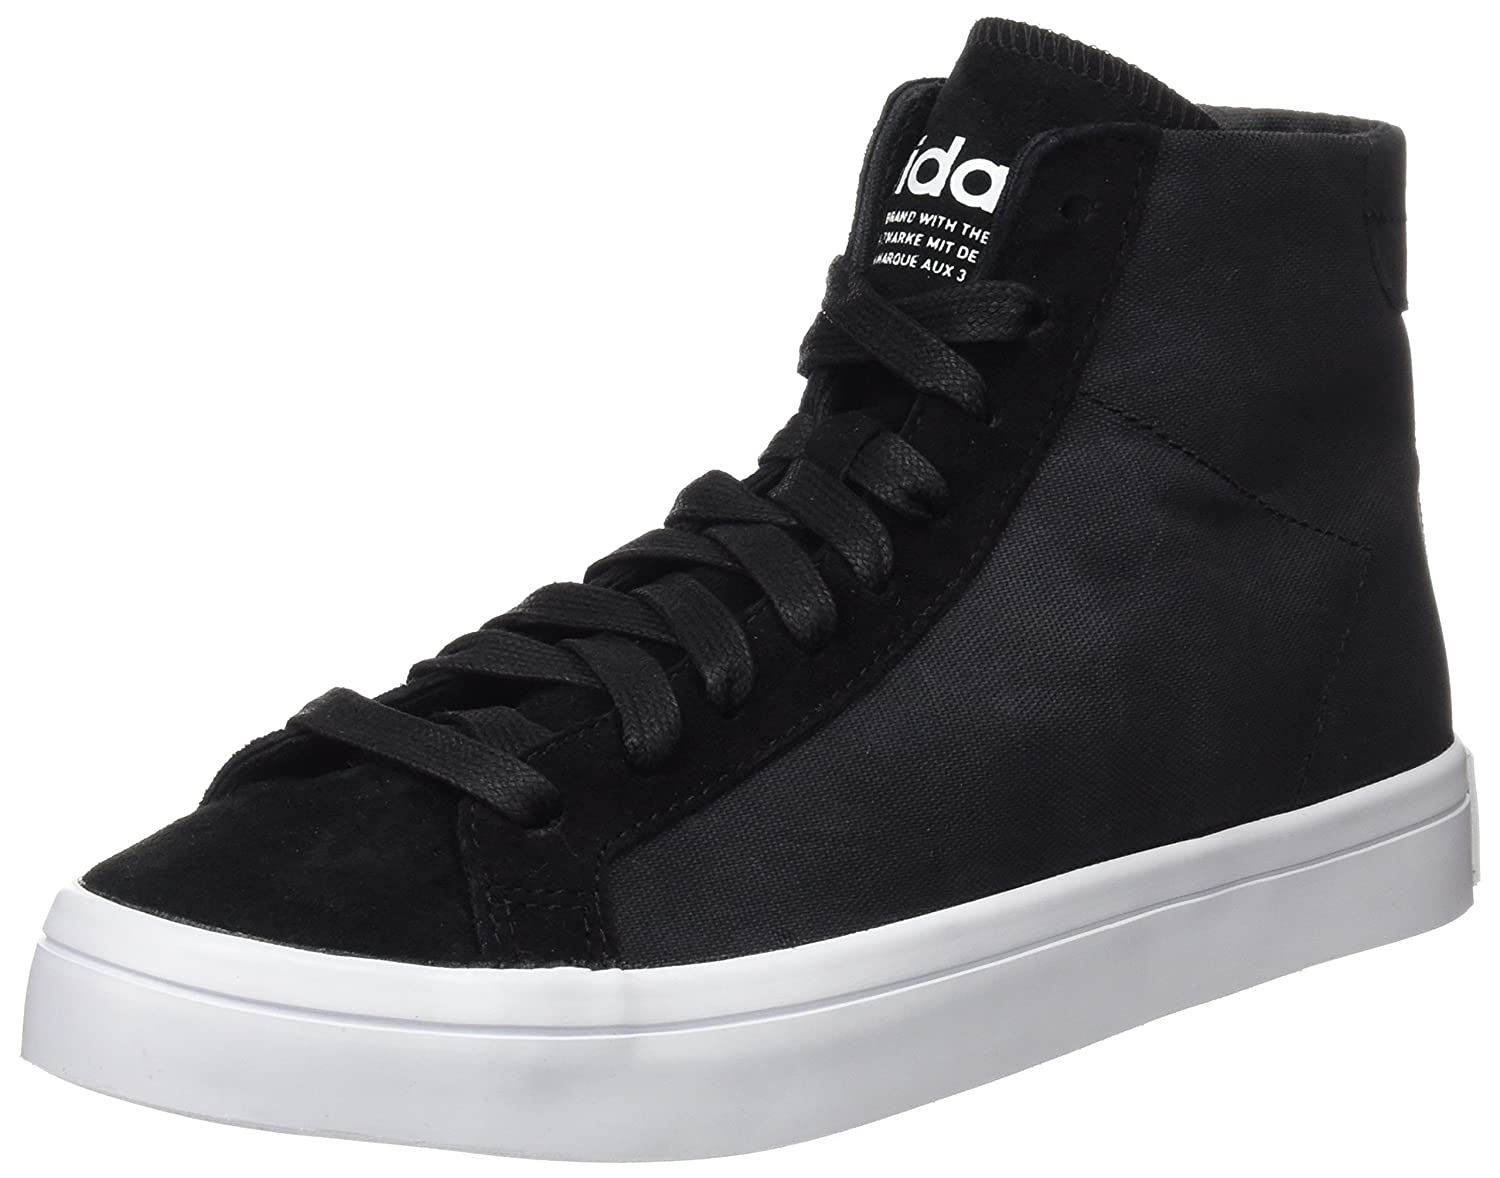 Adidas Damen Court Vantage Mid High-Top schwarz